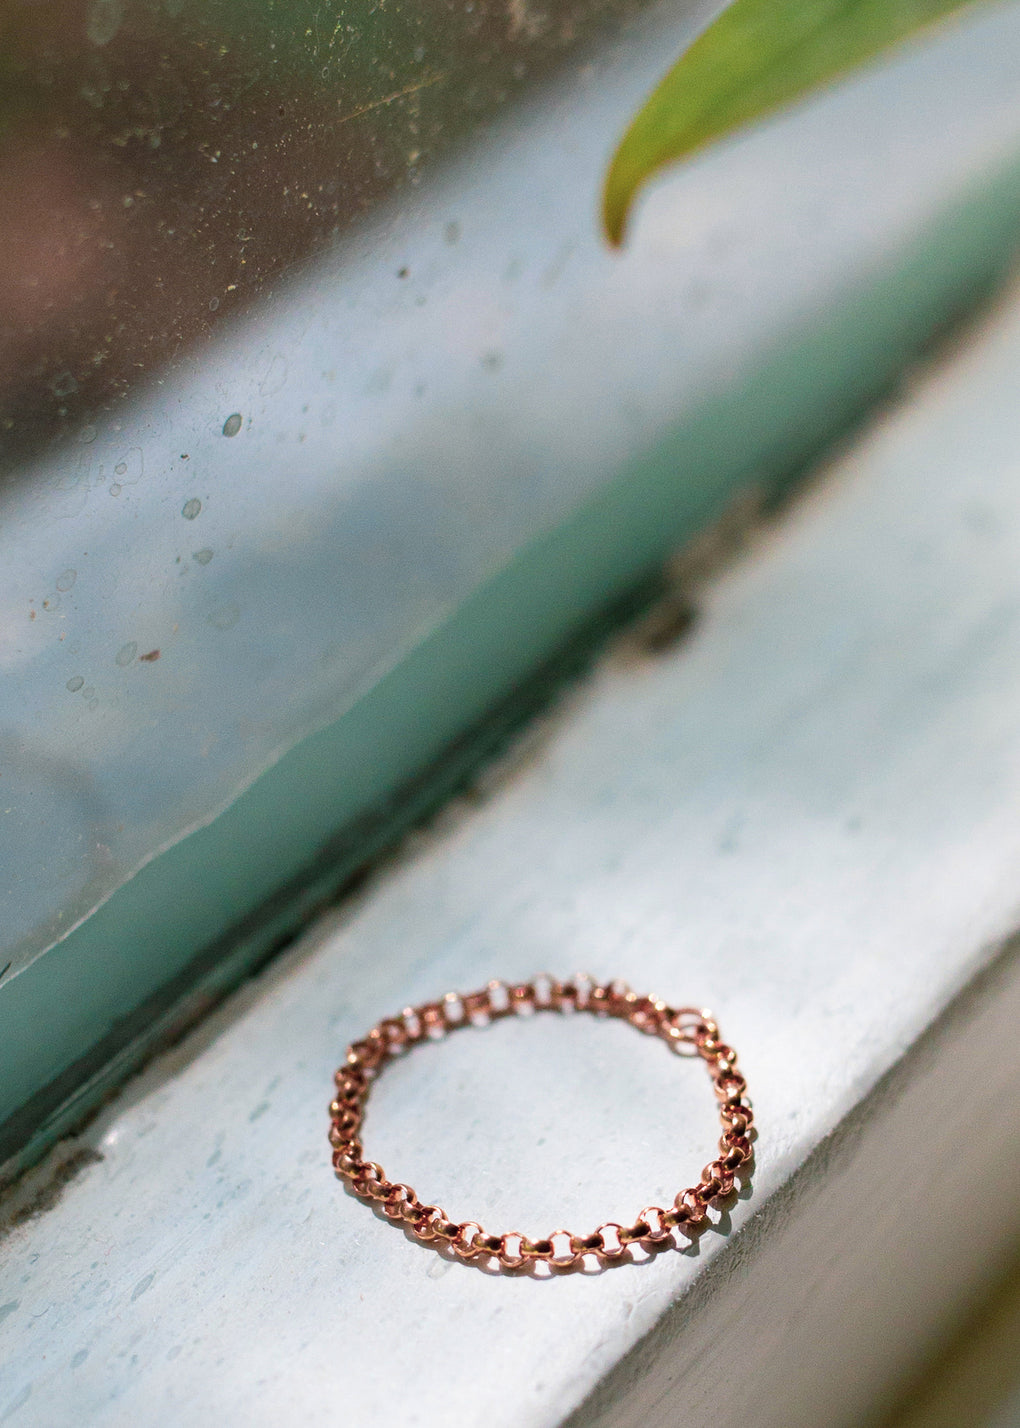 Disparate Youth Chain Ring rose gold Ashley Carson tarnish free jewelry ashleycarsondesigns.com